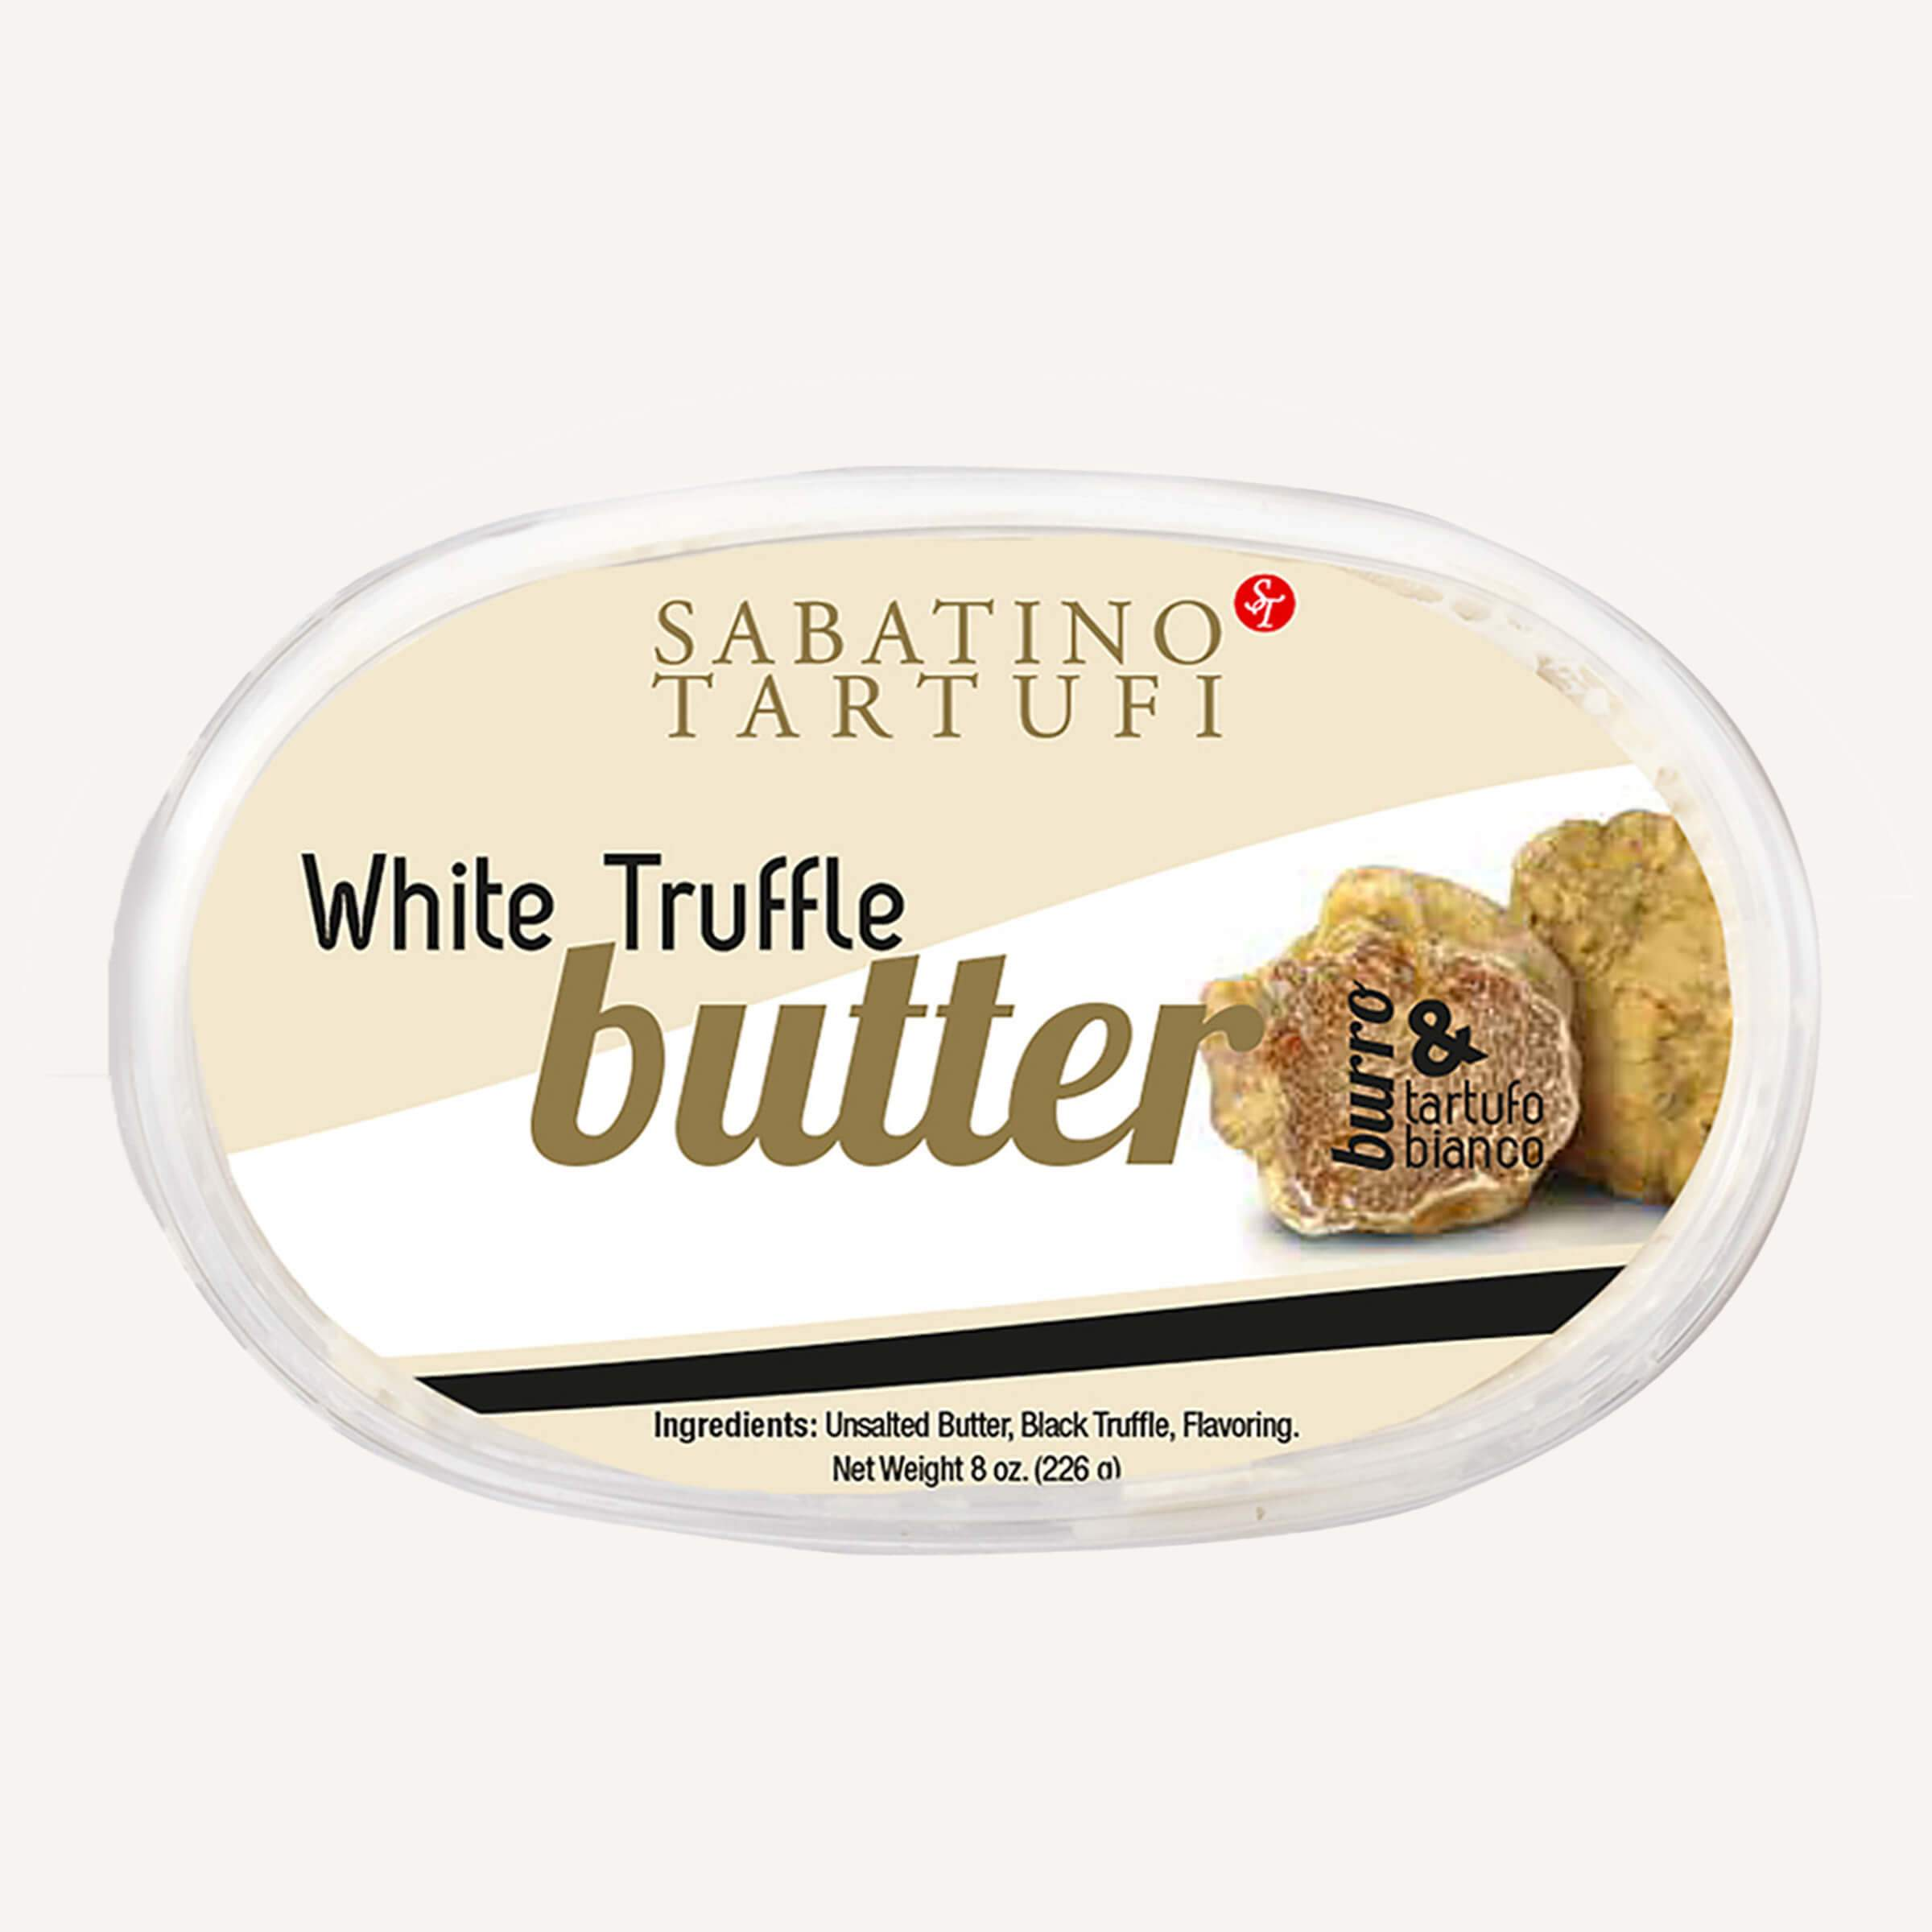 White Truffle Butter - 8 oz <br> Case Pack 12 Units